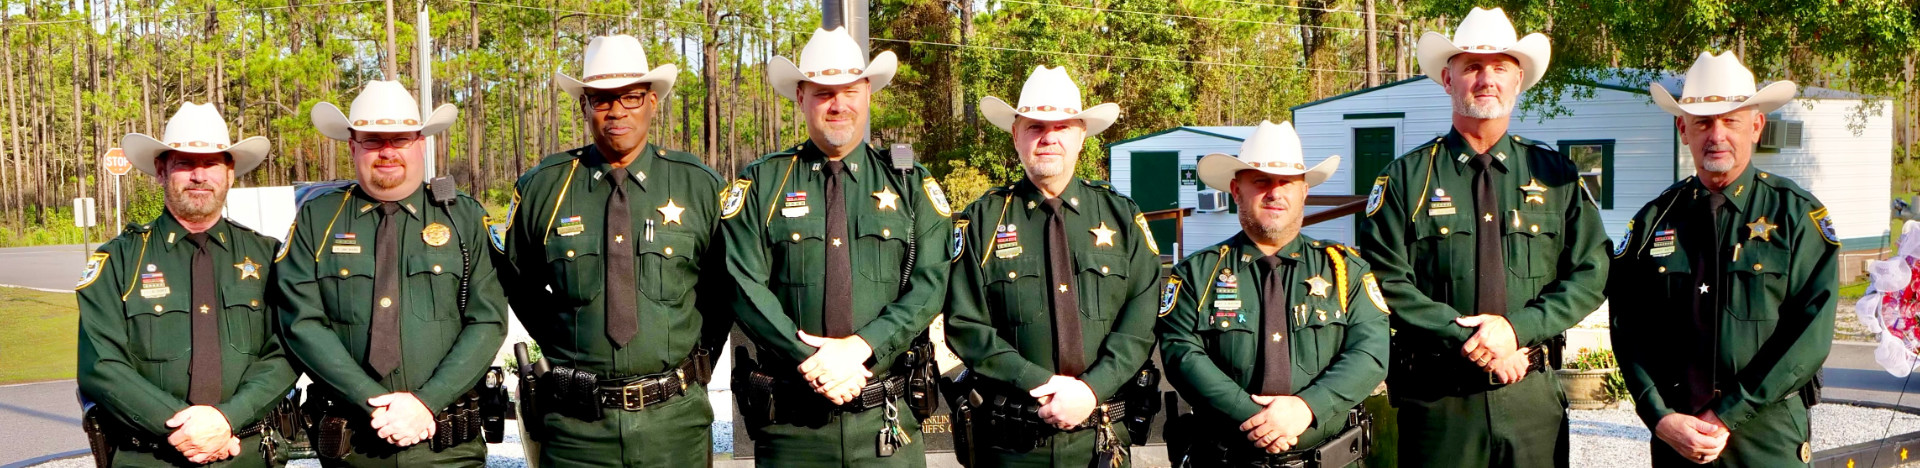 Franklin County Sheriff's Office Franklin County Florida